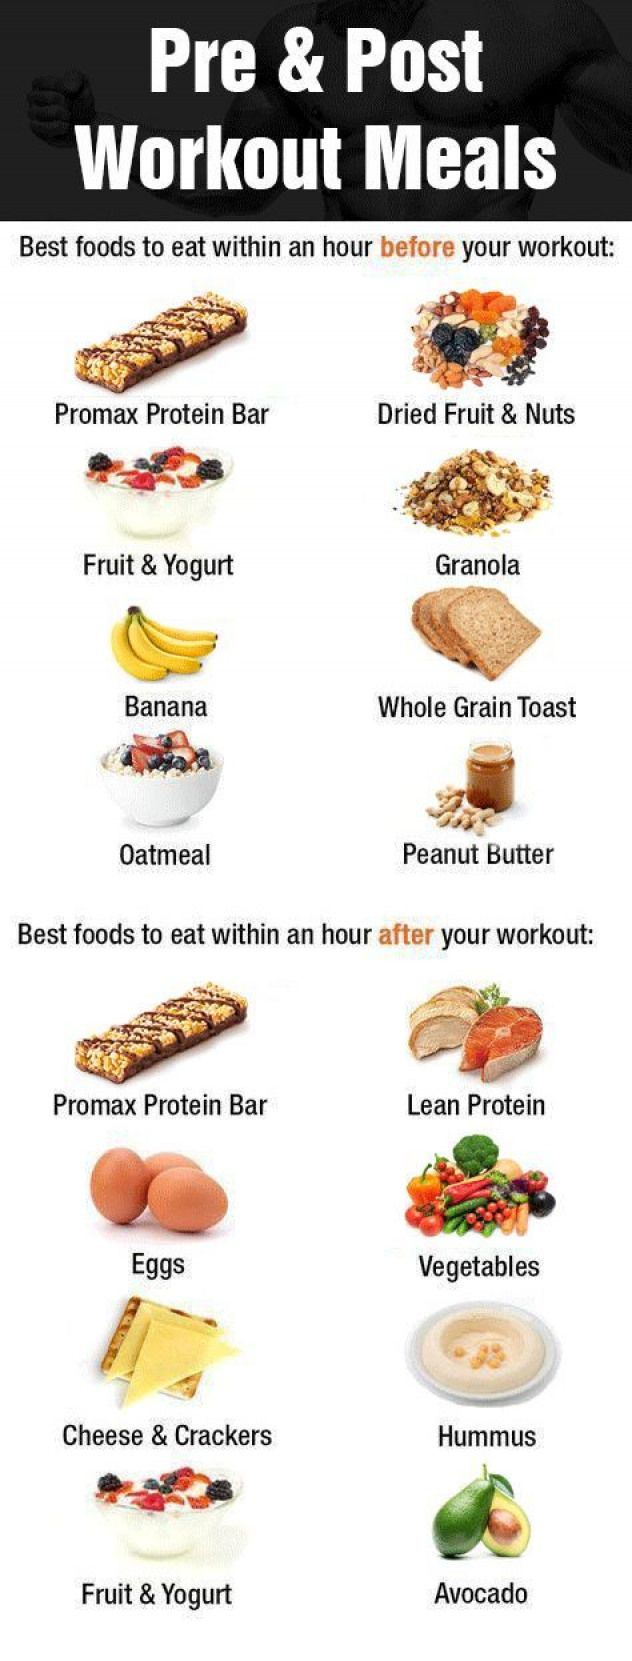 Pre And Post Workout Meals For Muscle Gain Muscle Gain Meal Plan